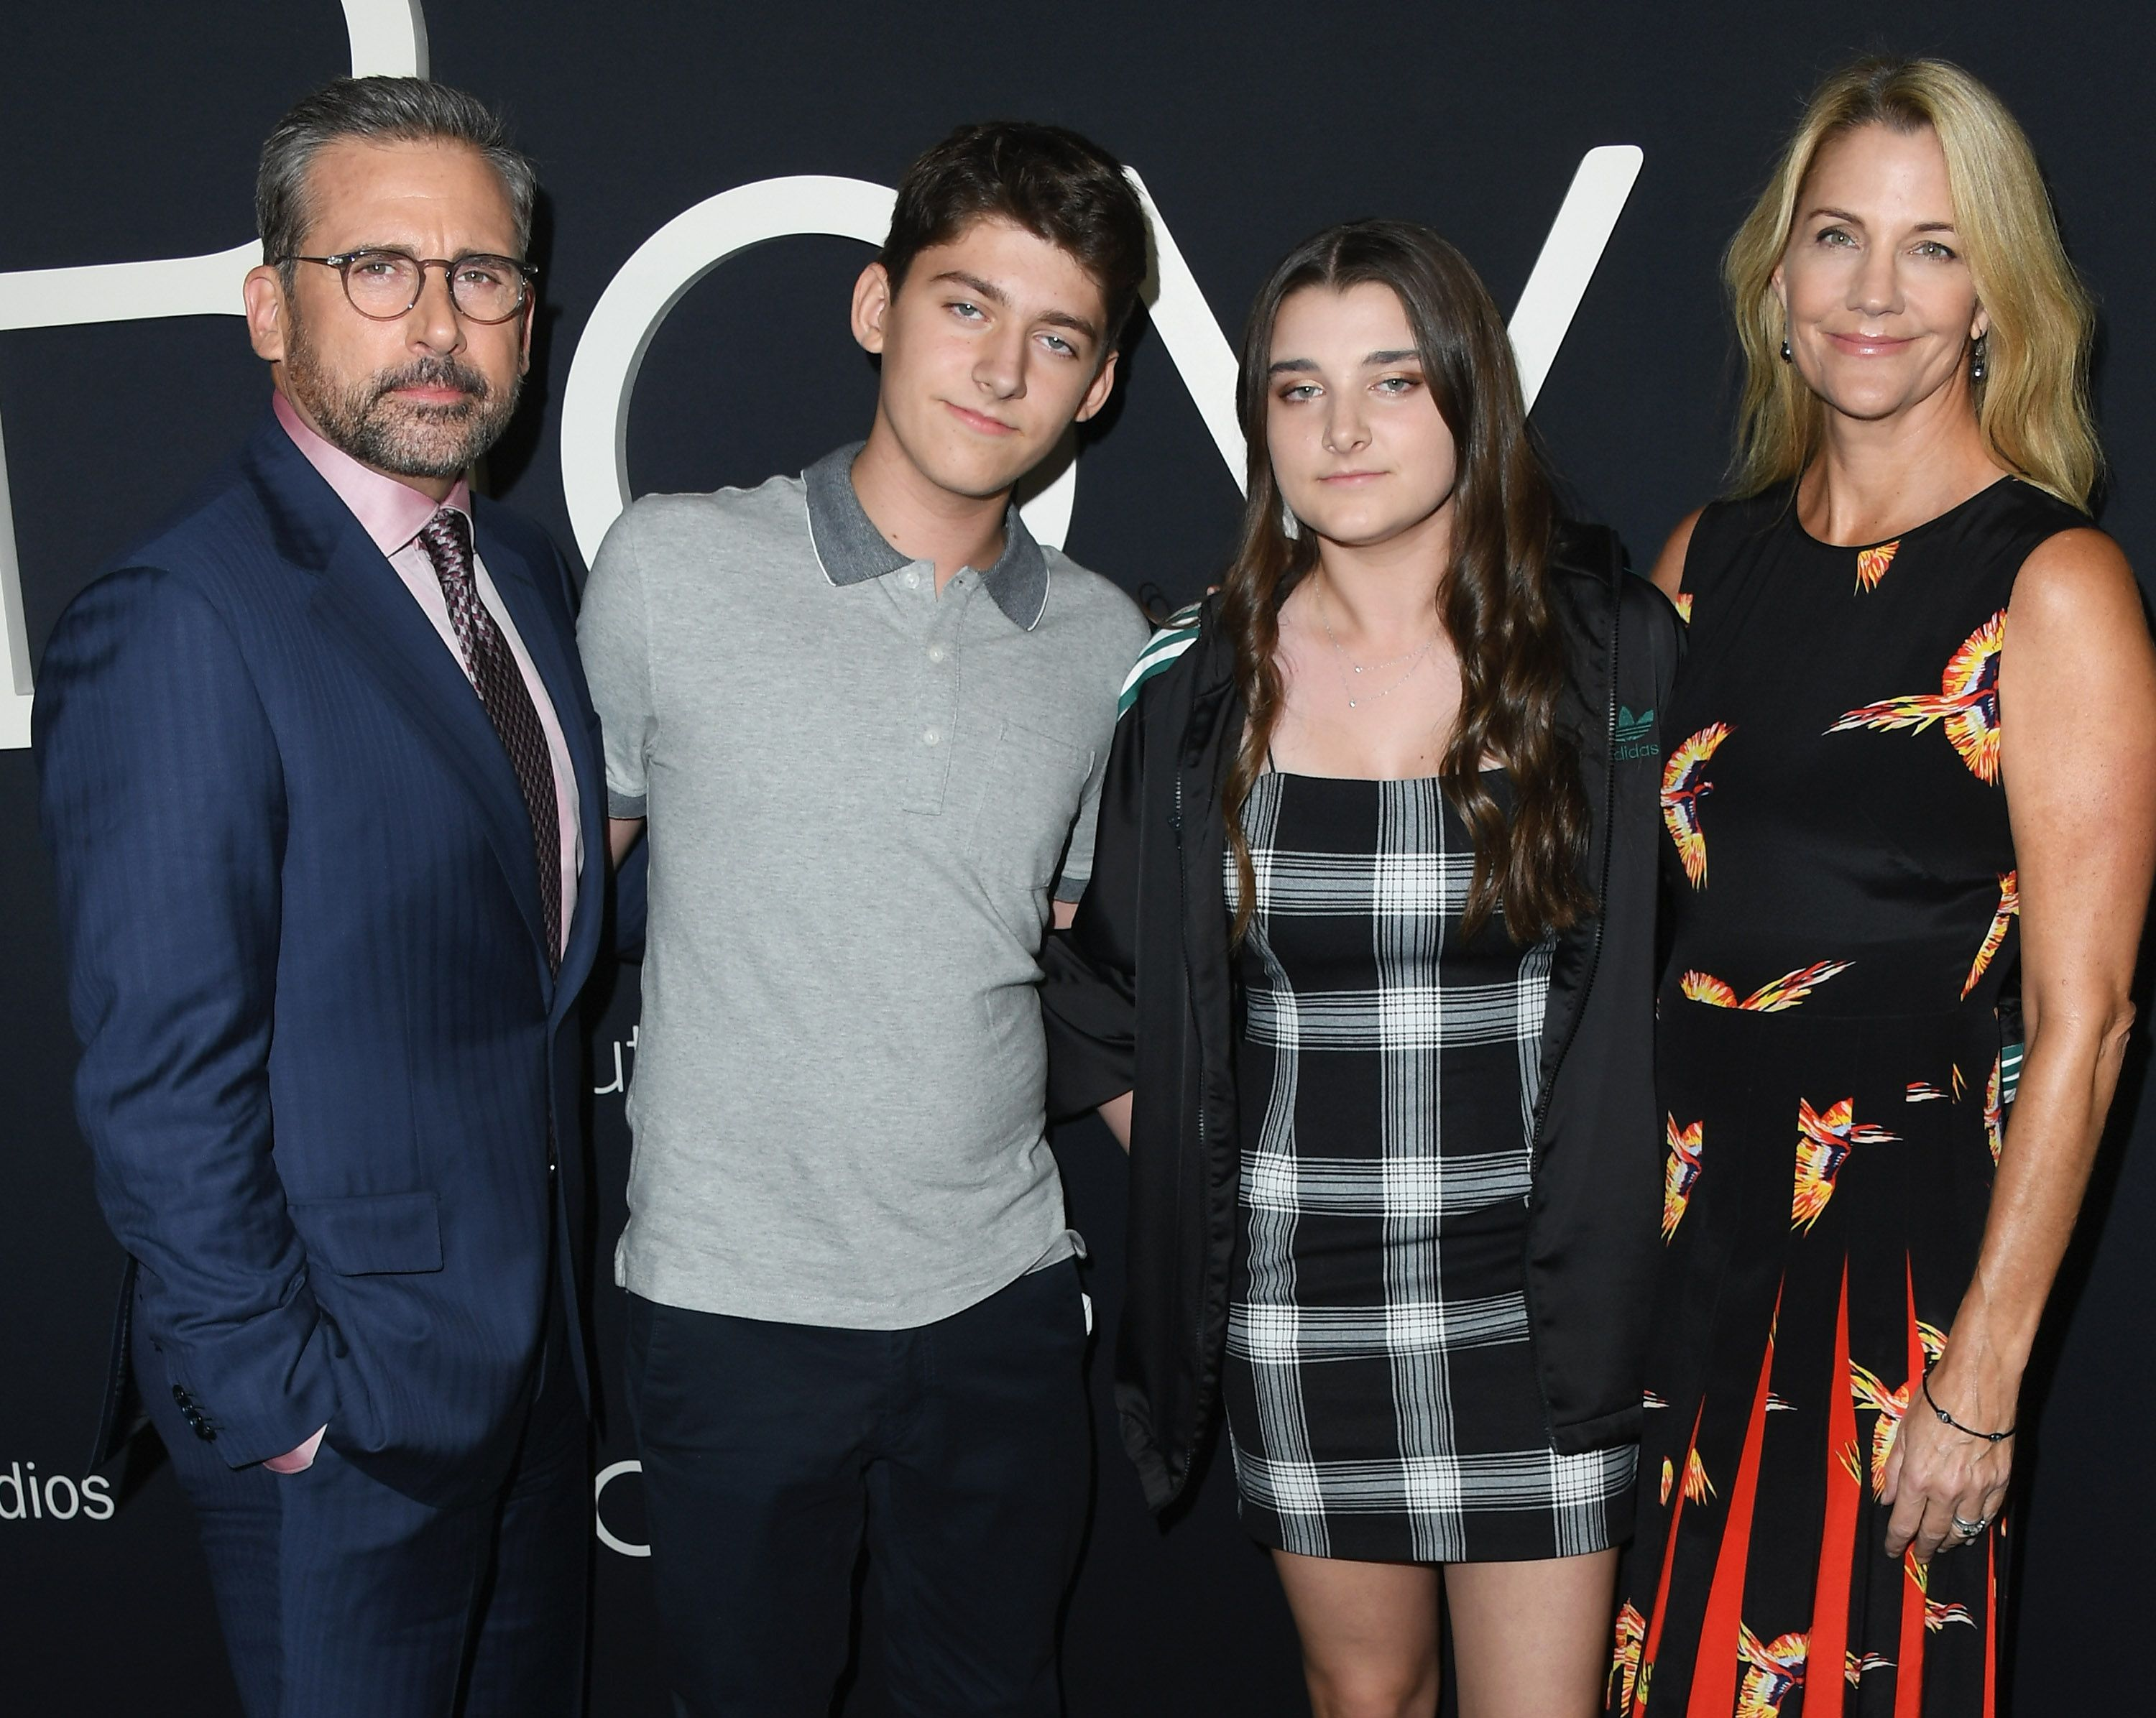 Steve Carell, John Carell, Elisabeth Anne Carell and Nancy Carell attend Amazon Studios of Angeles / Getty Images